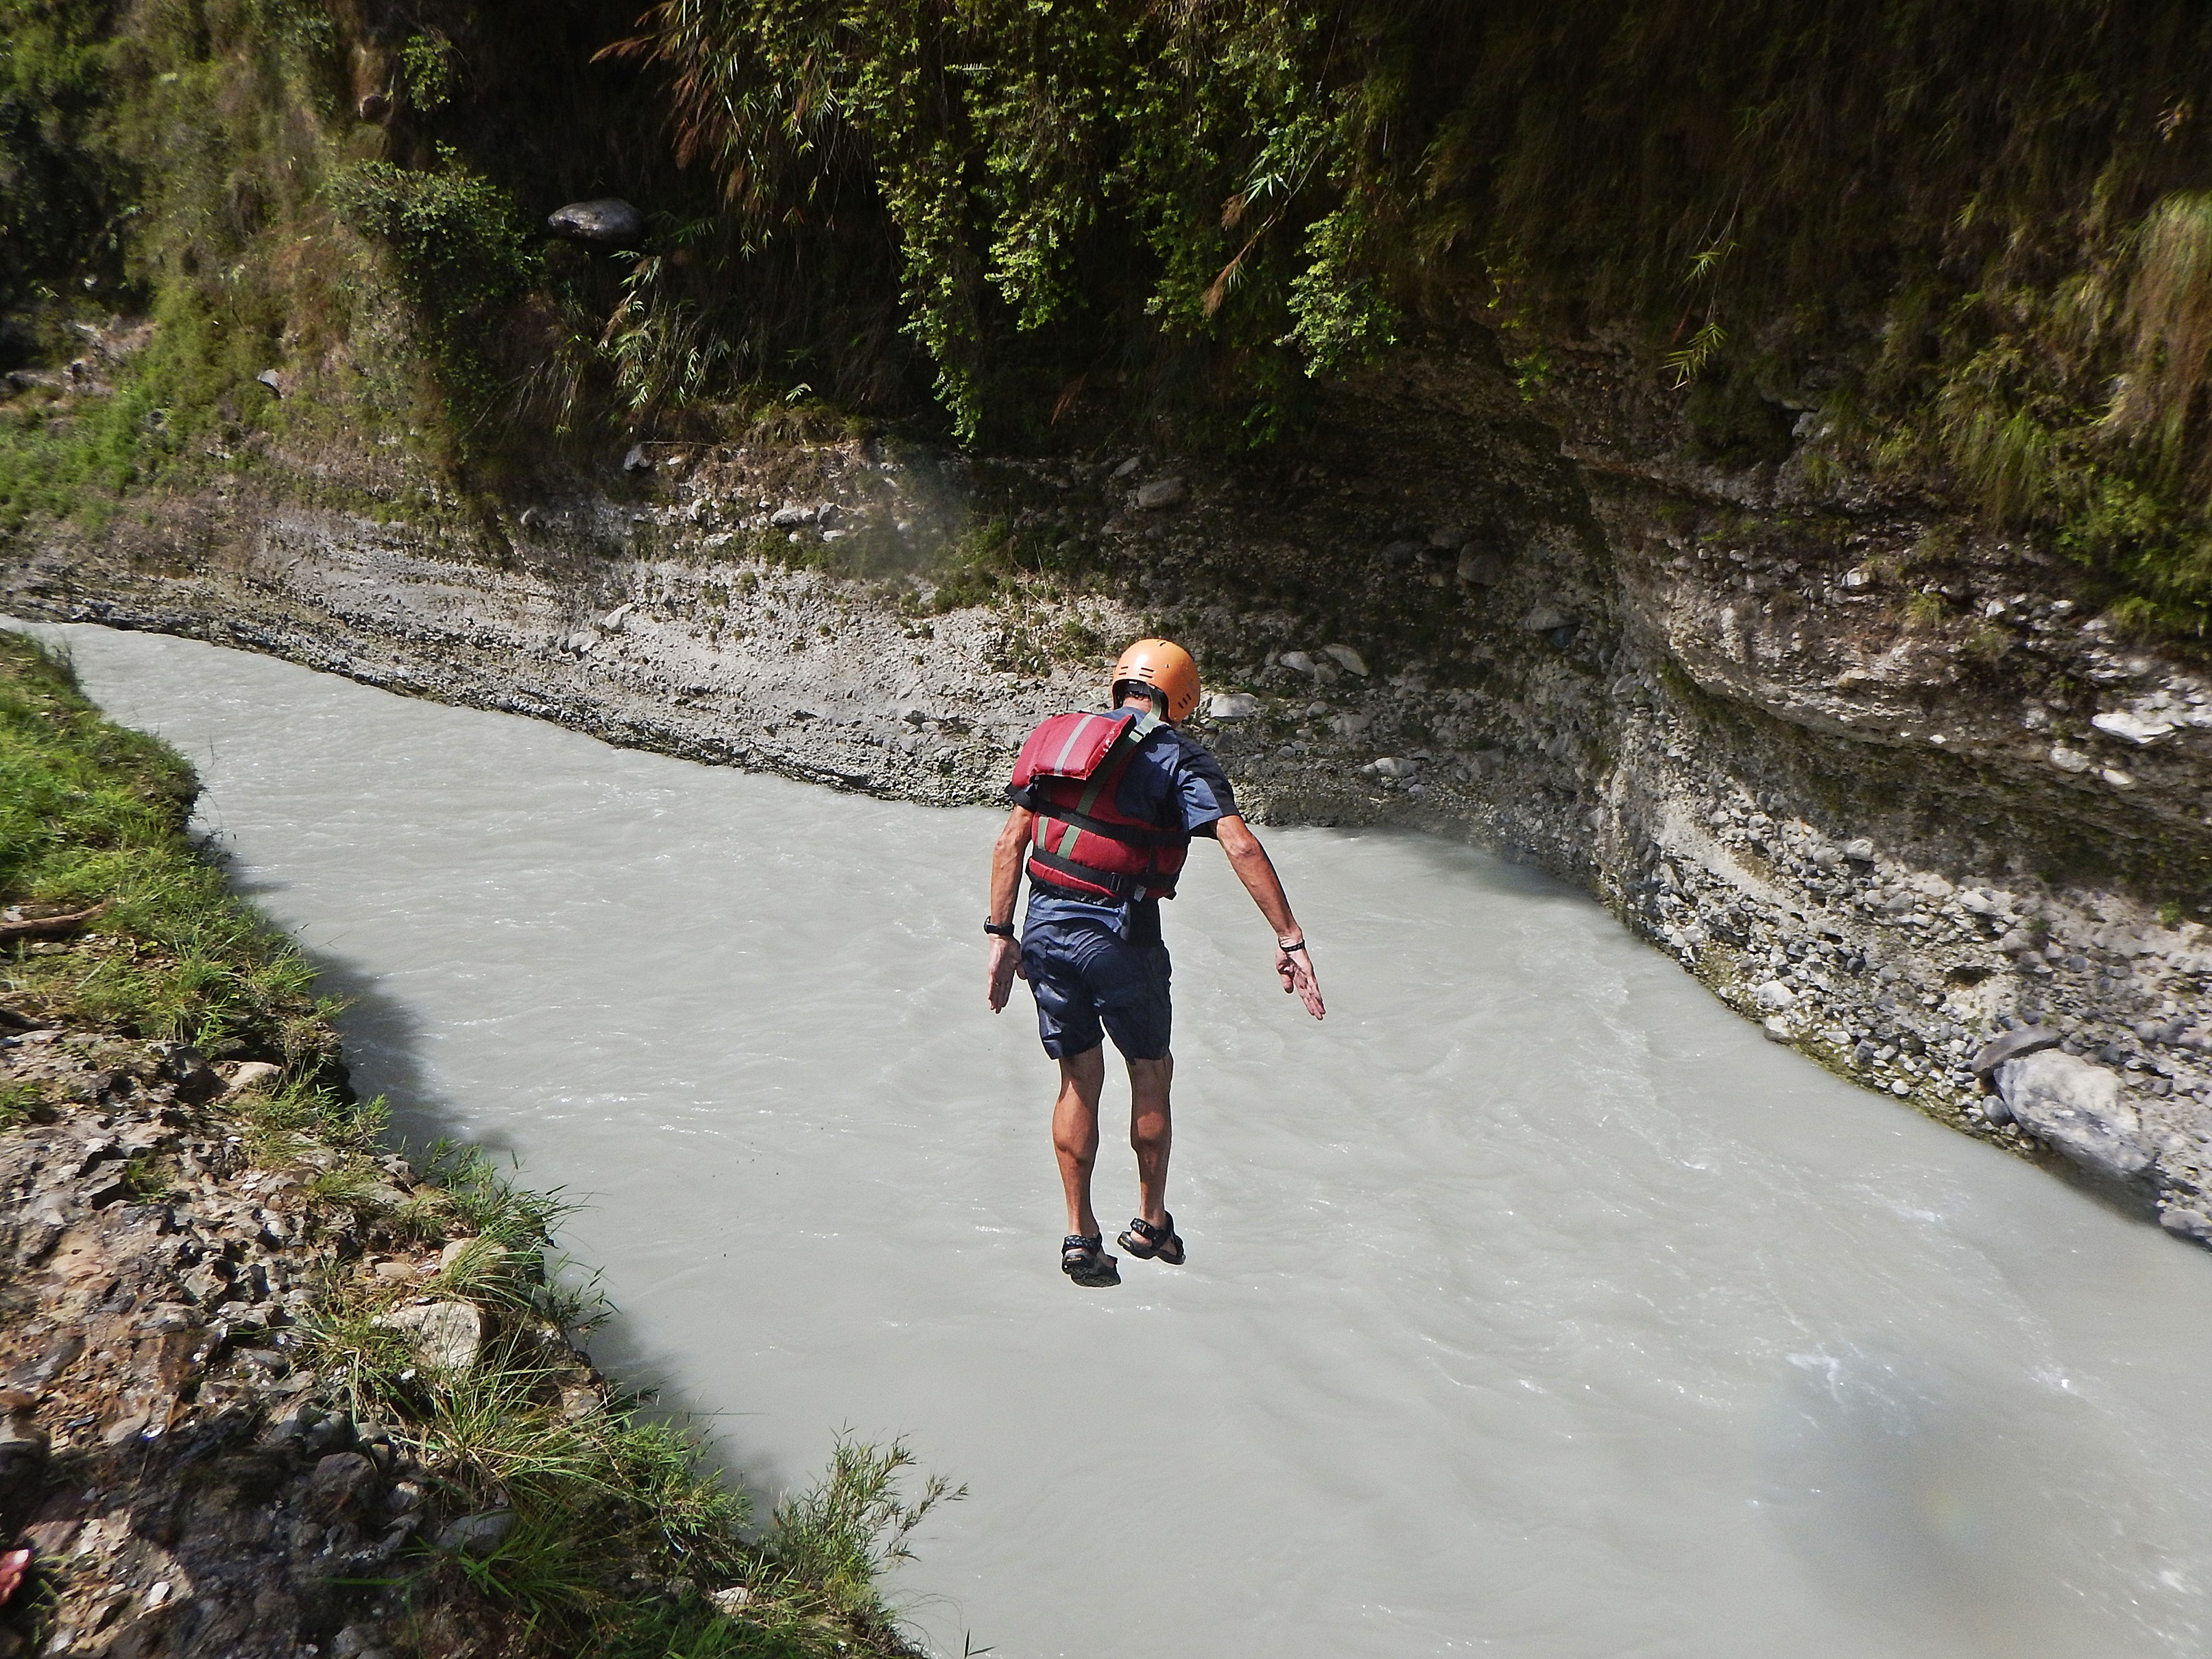 Cliff jumping on the Seti River